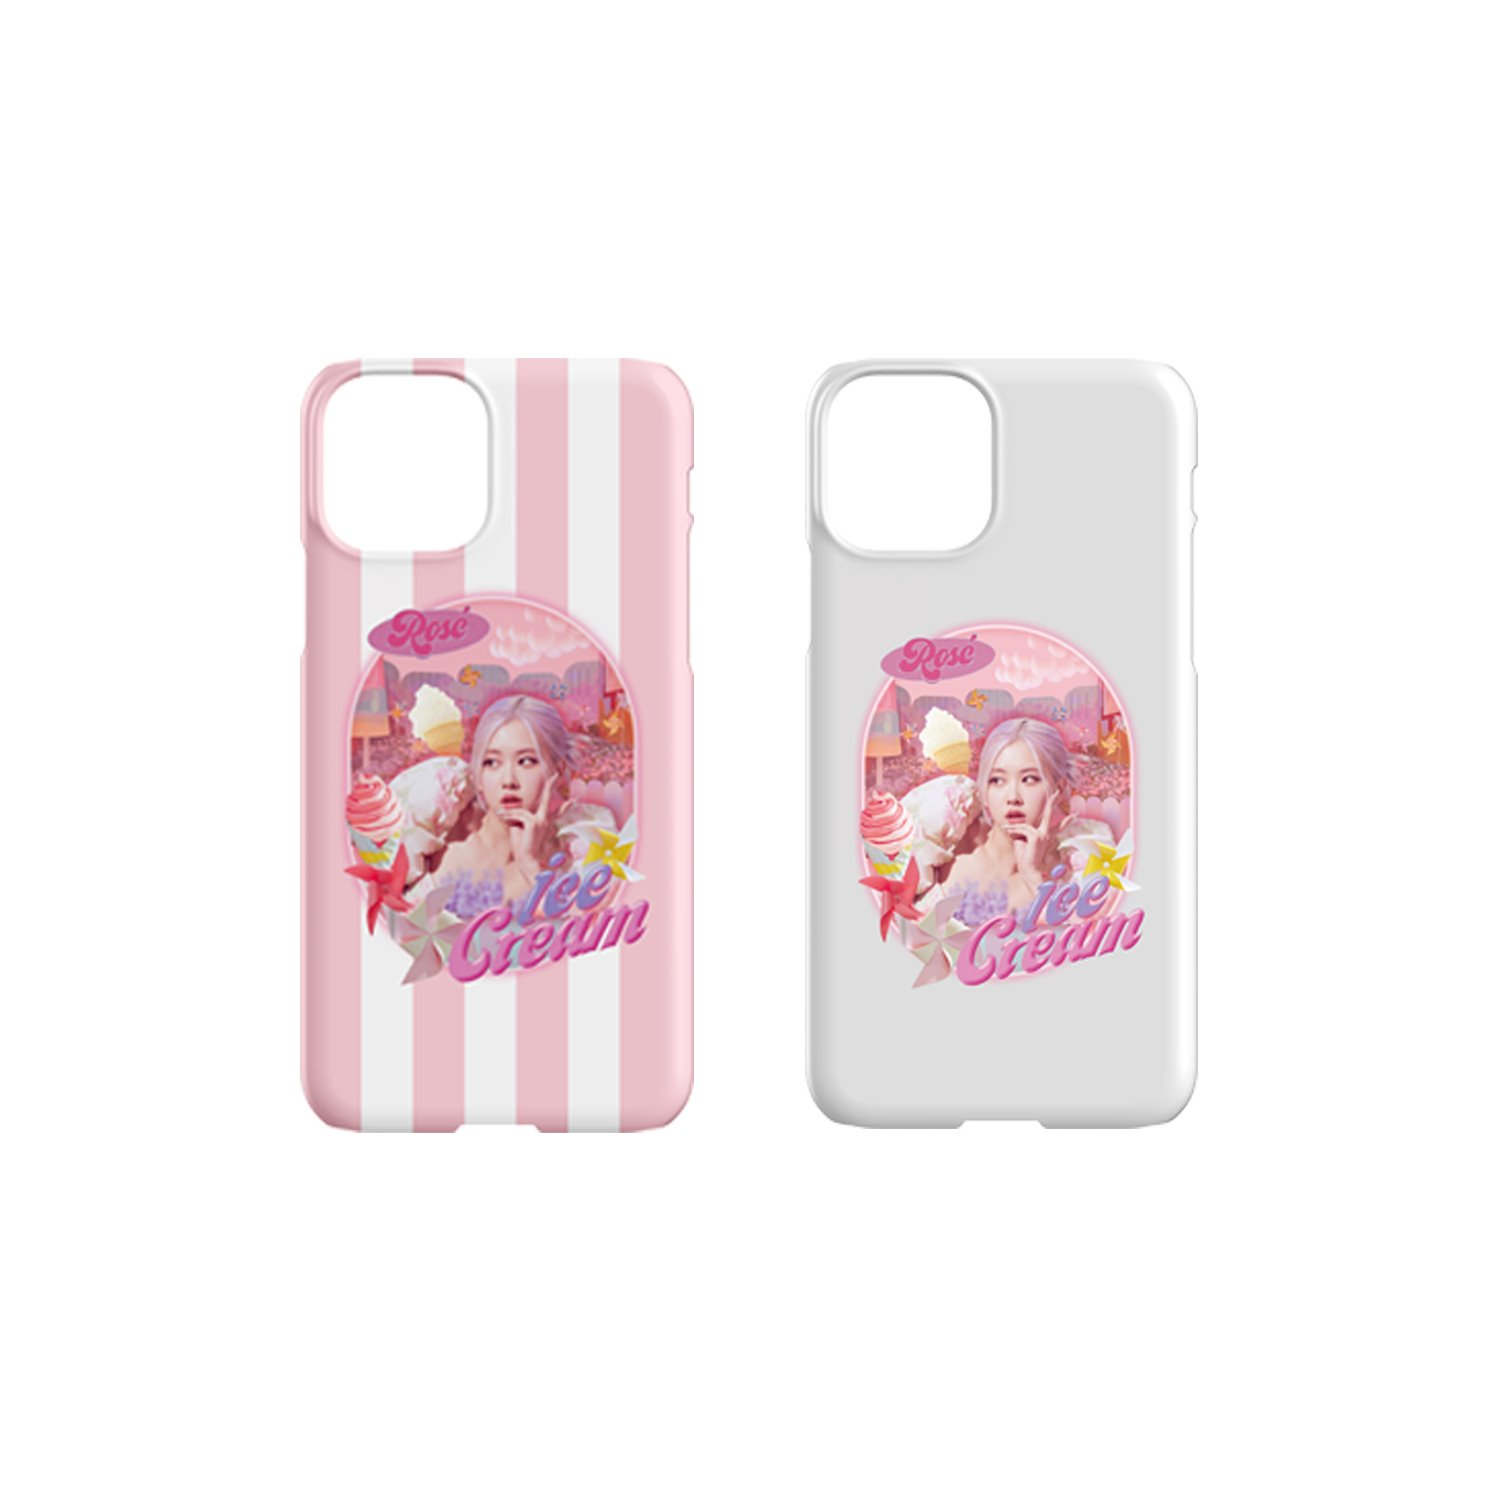 [WOYC] BLACKPINK PHONECASE_ICECREAM MV_ROSÉ